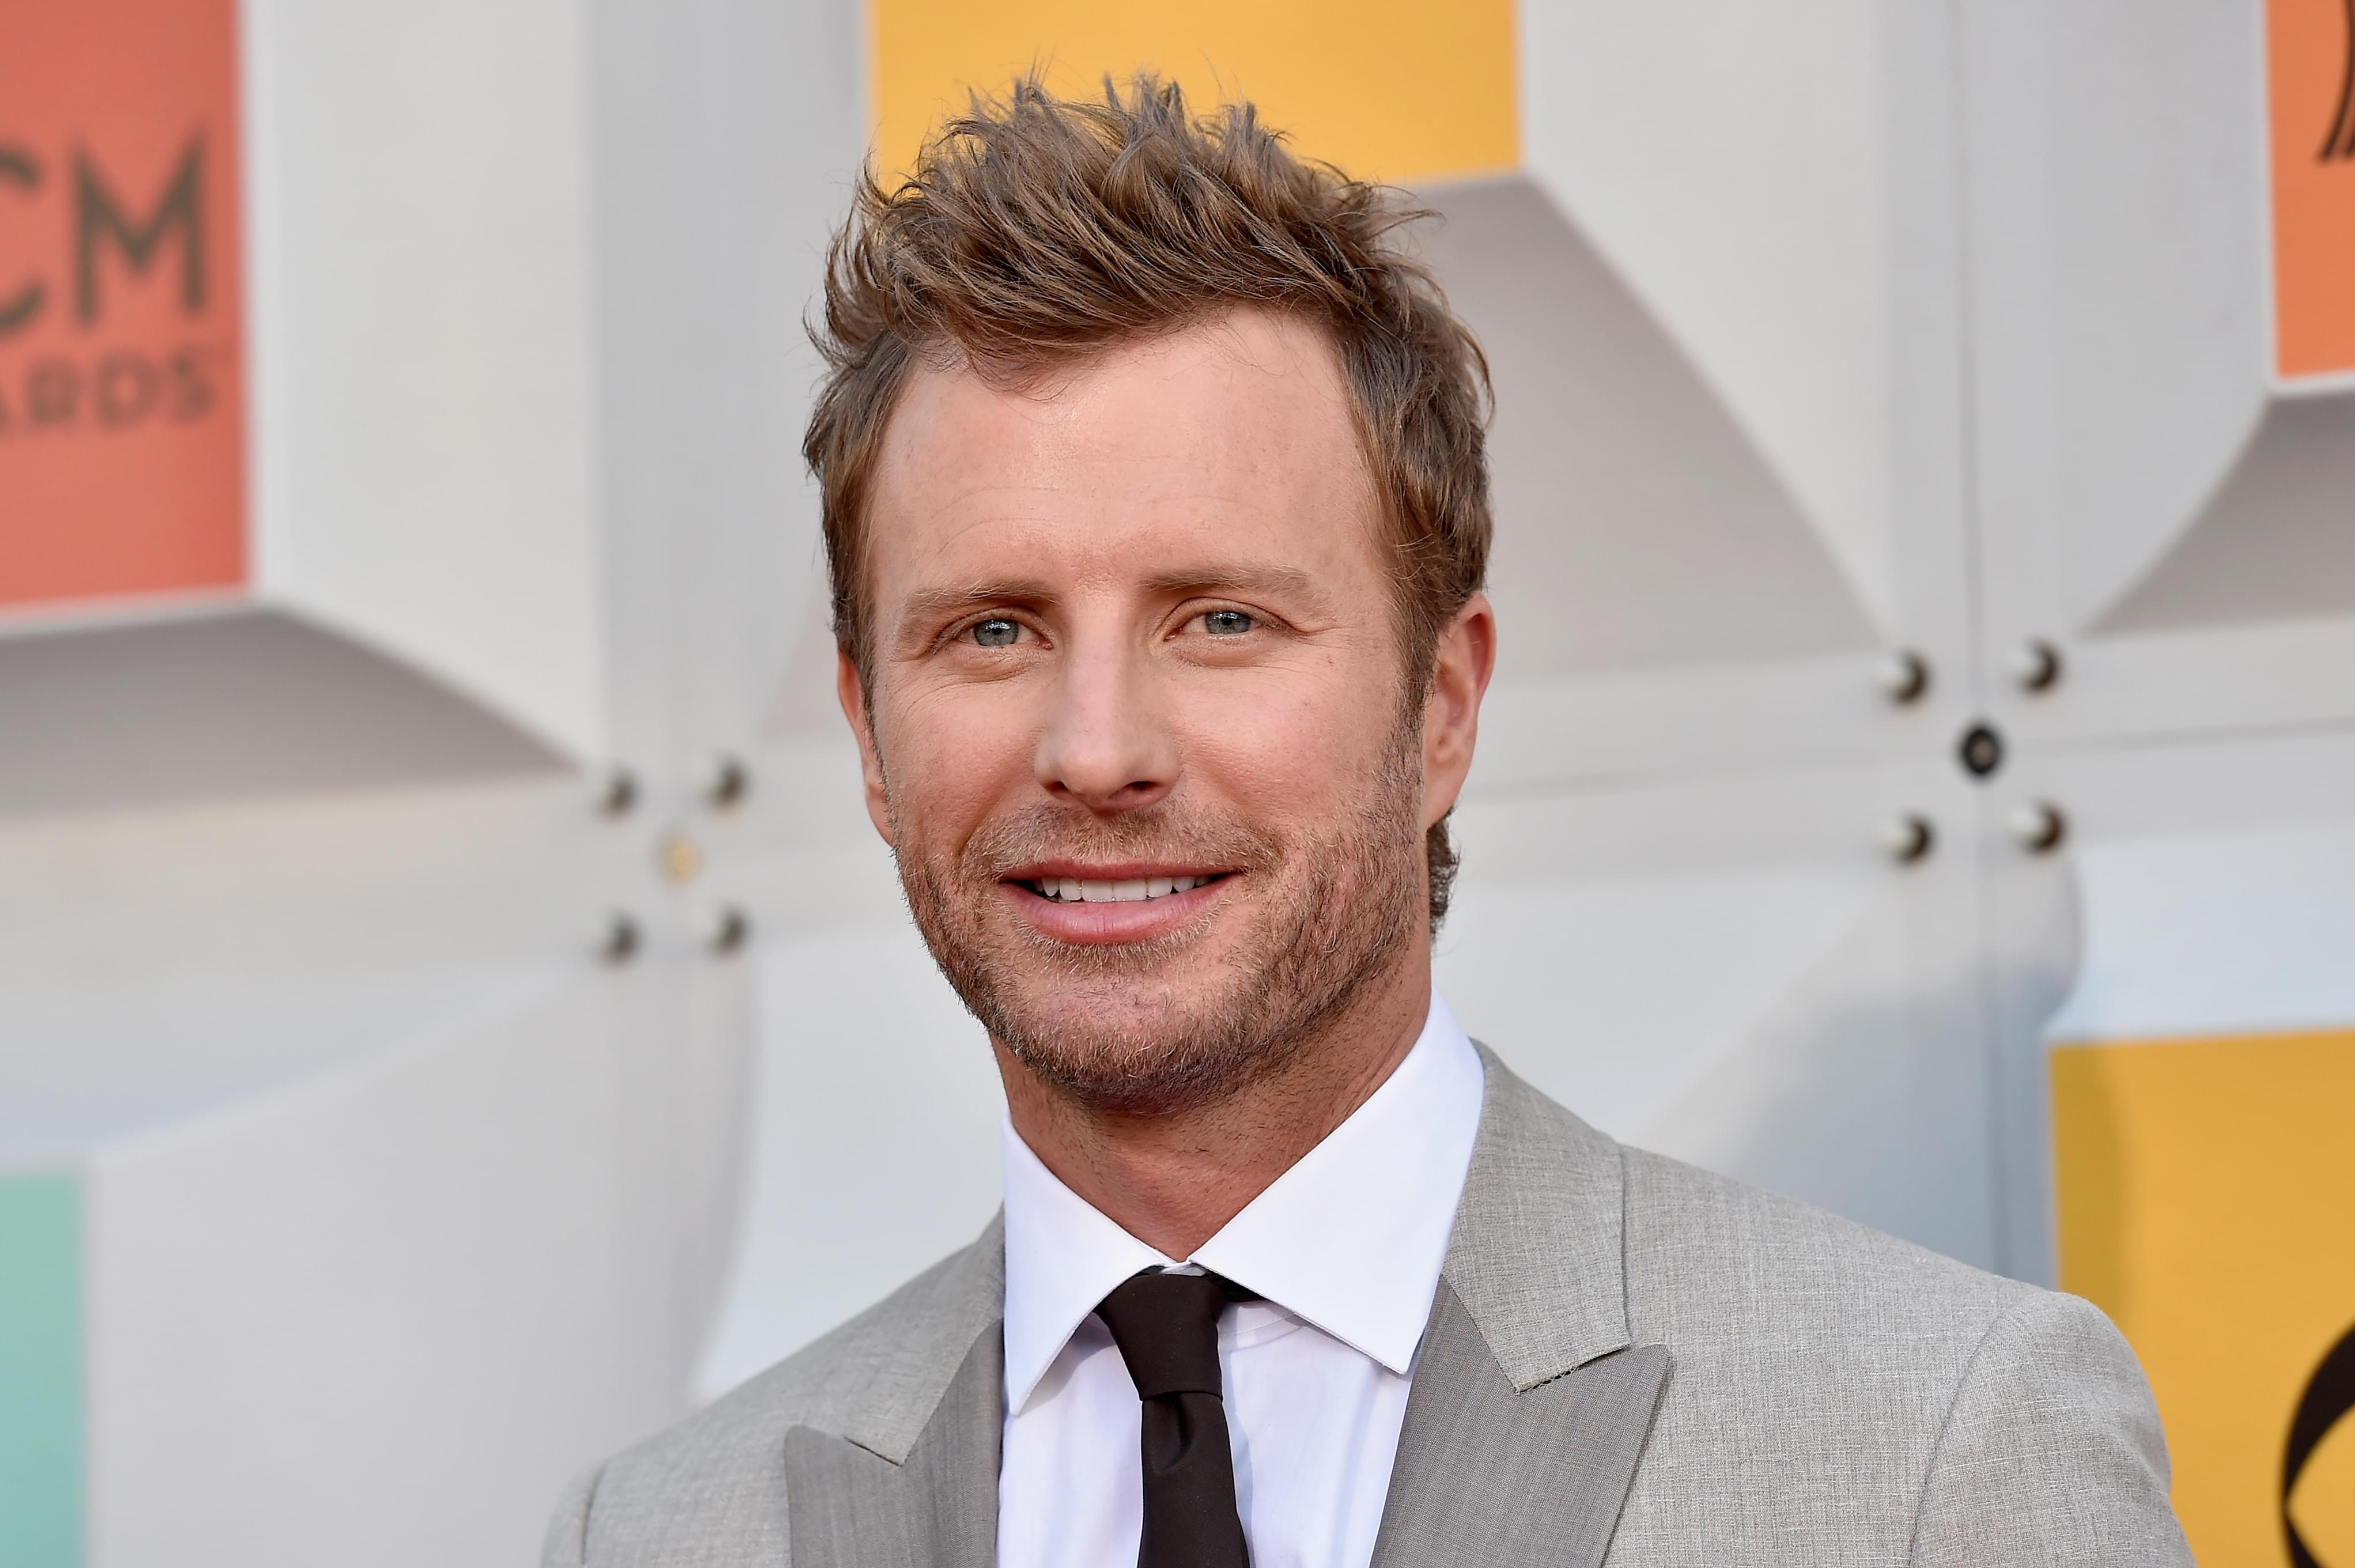 Dierks Bentley Falls In Love With Puppy, Adopts Him On Live TV [WATCH]